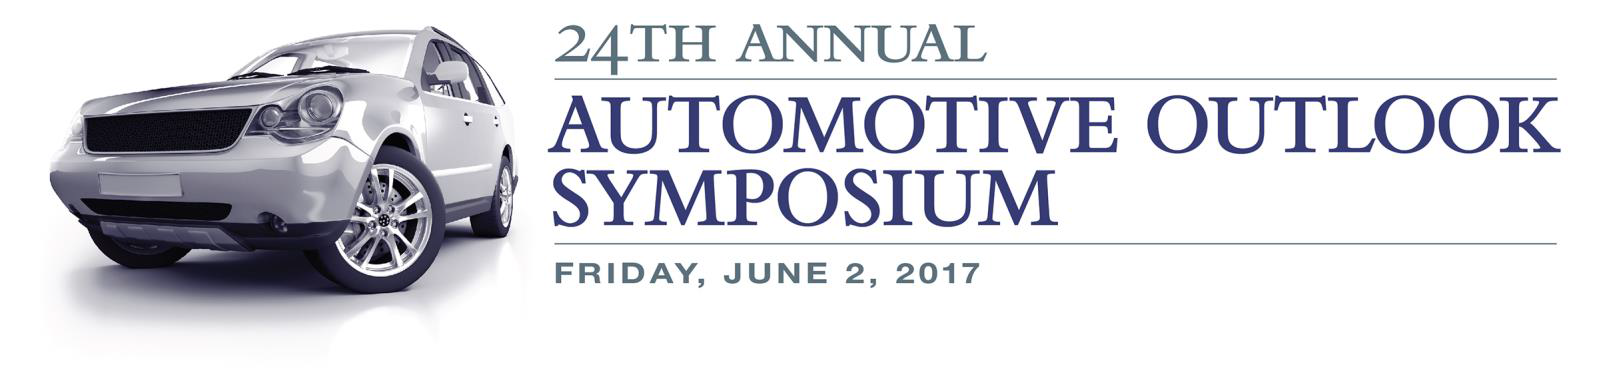 23rd annual automotive outlook symposium logo